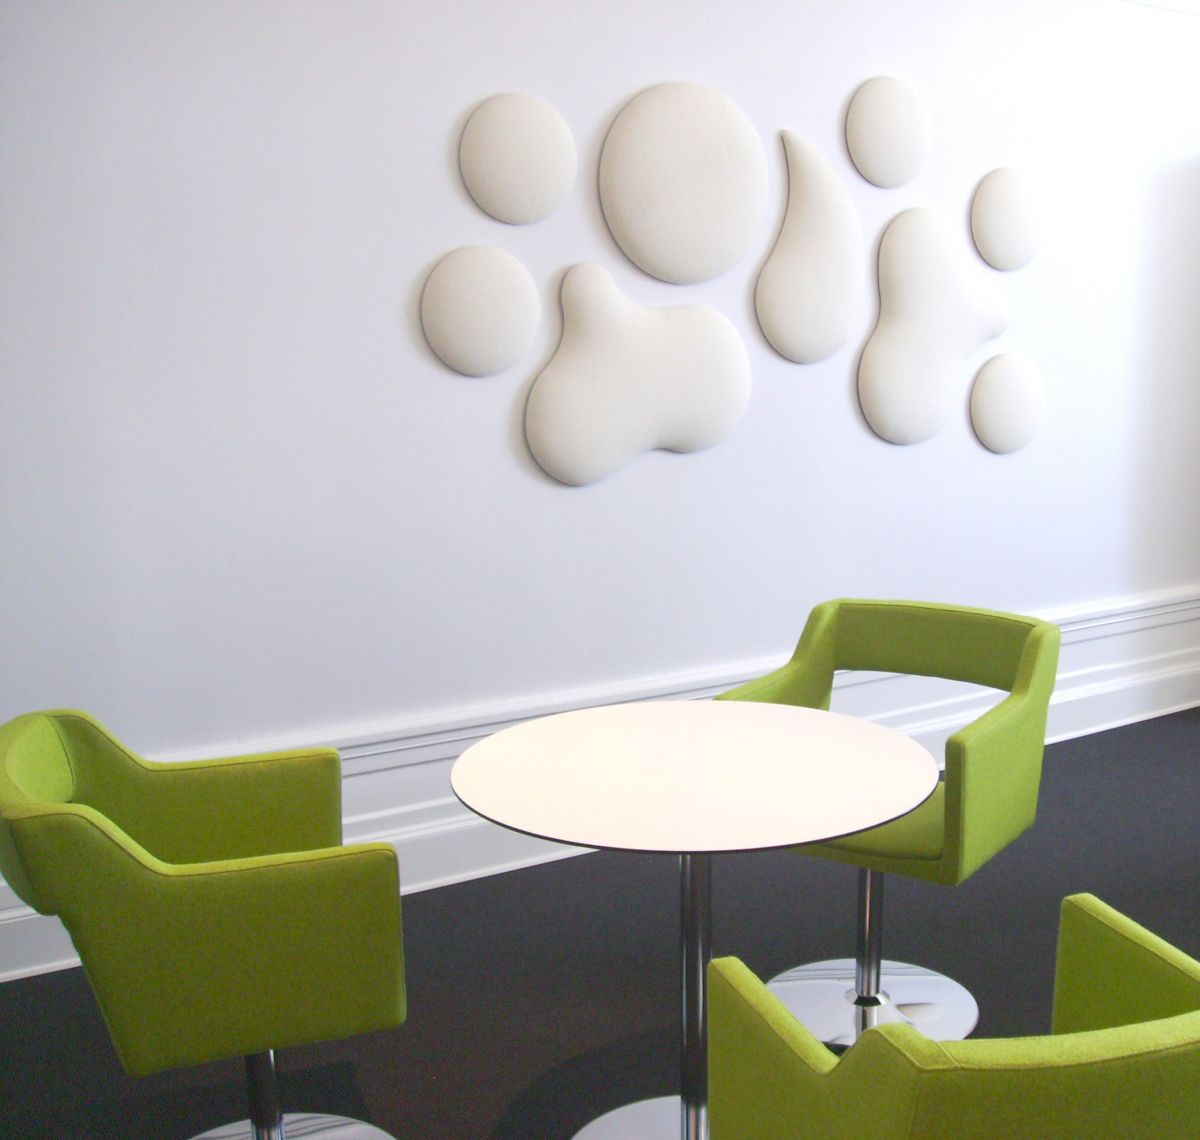 Decorative sound absorbing wall panels from wobedo design karmatrendz - Creative wall decor ideas ...